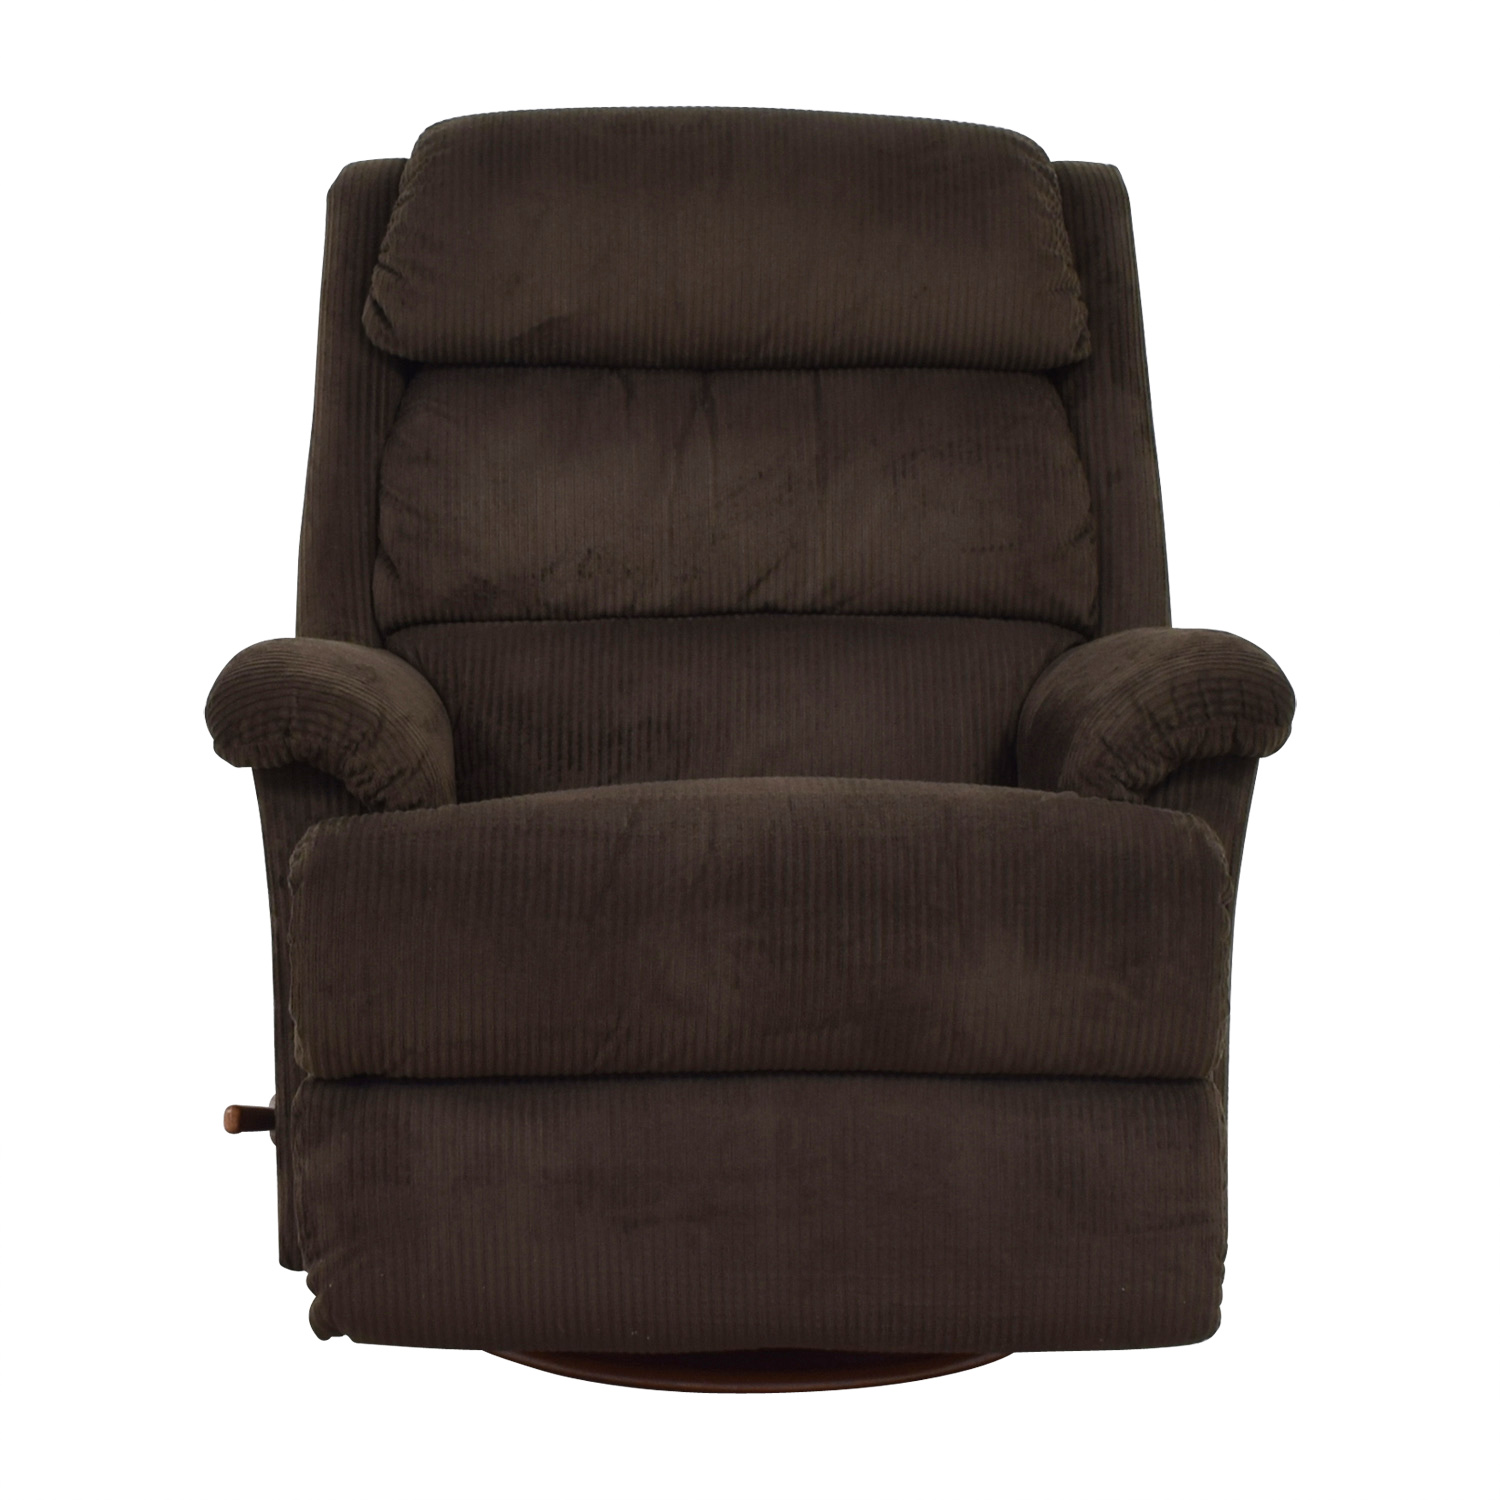 Lay-Z-Boy Lay-Z-Boy Brown Recliner for sale